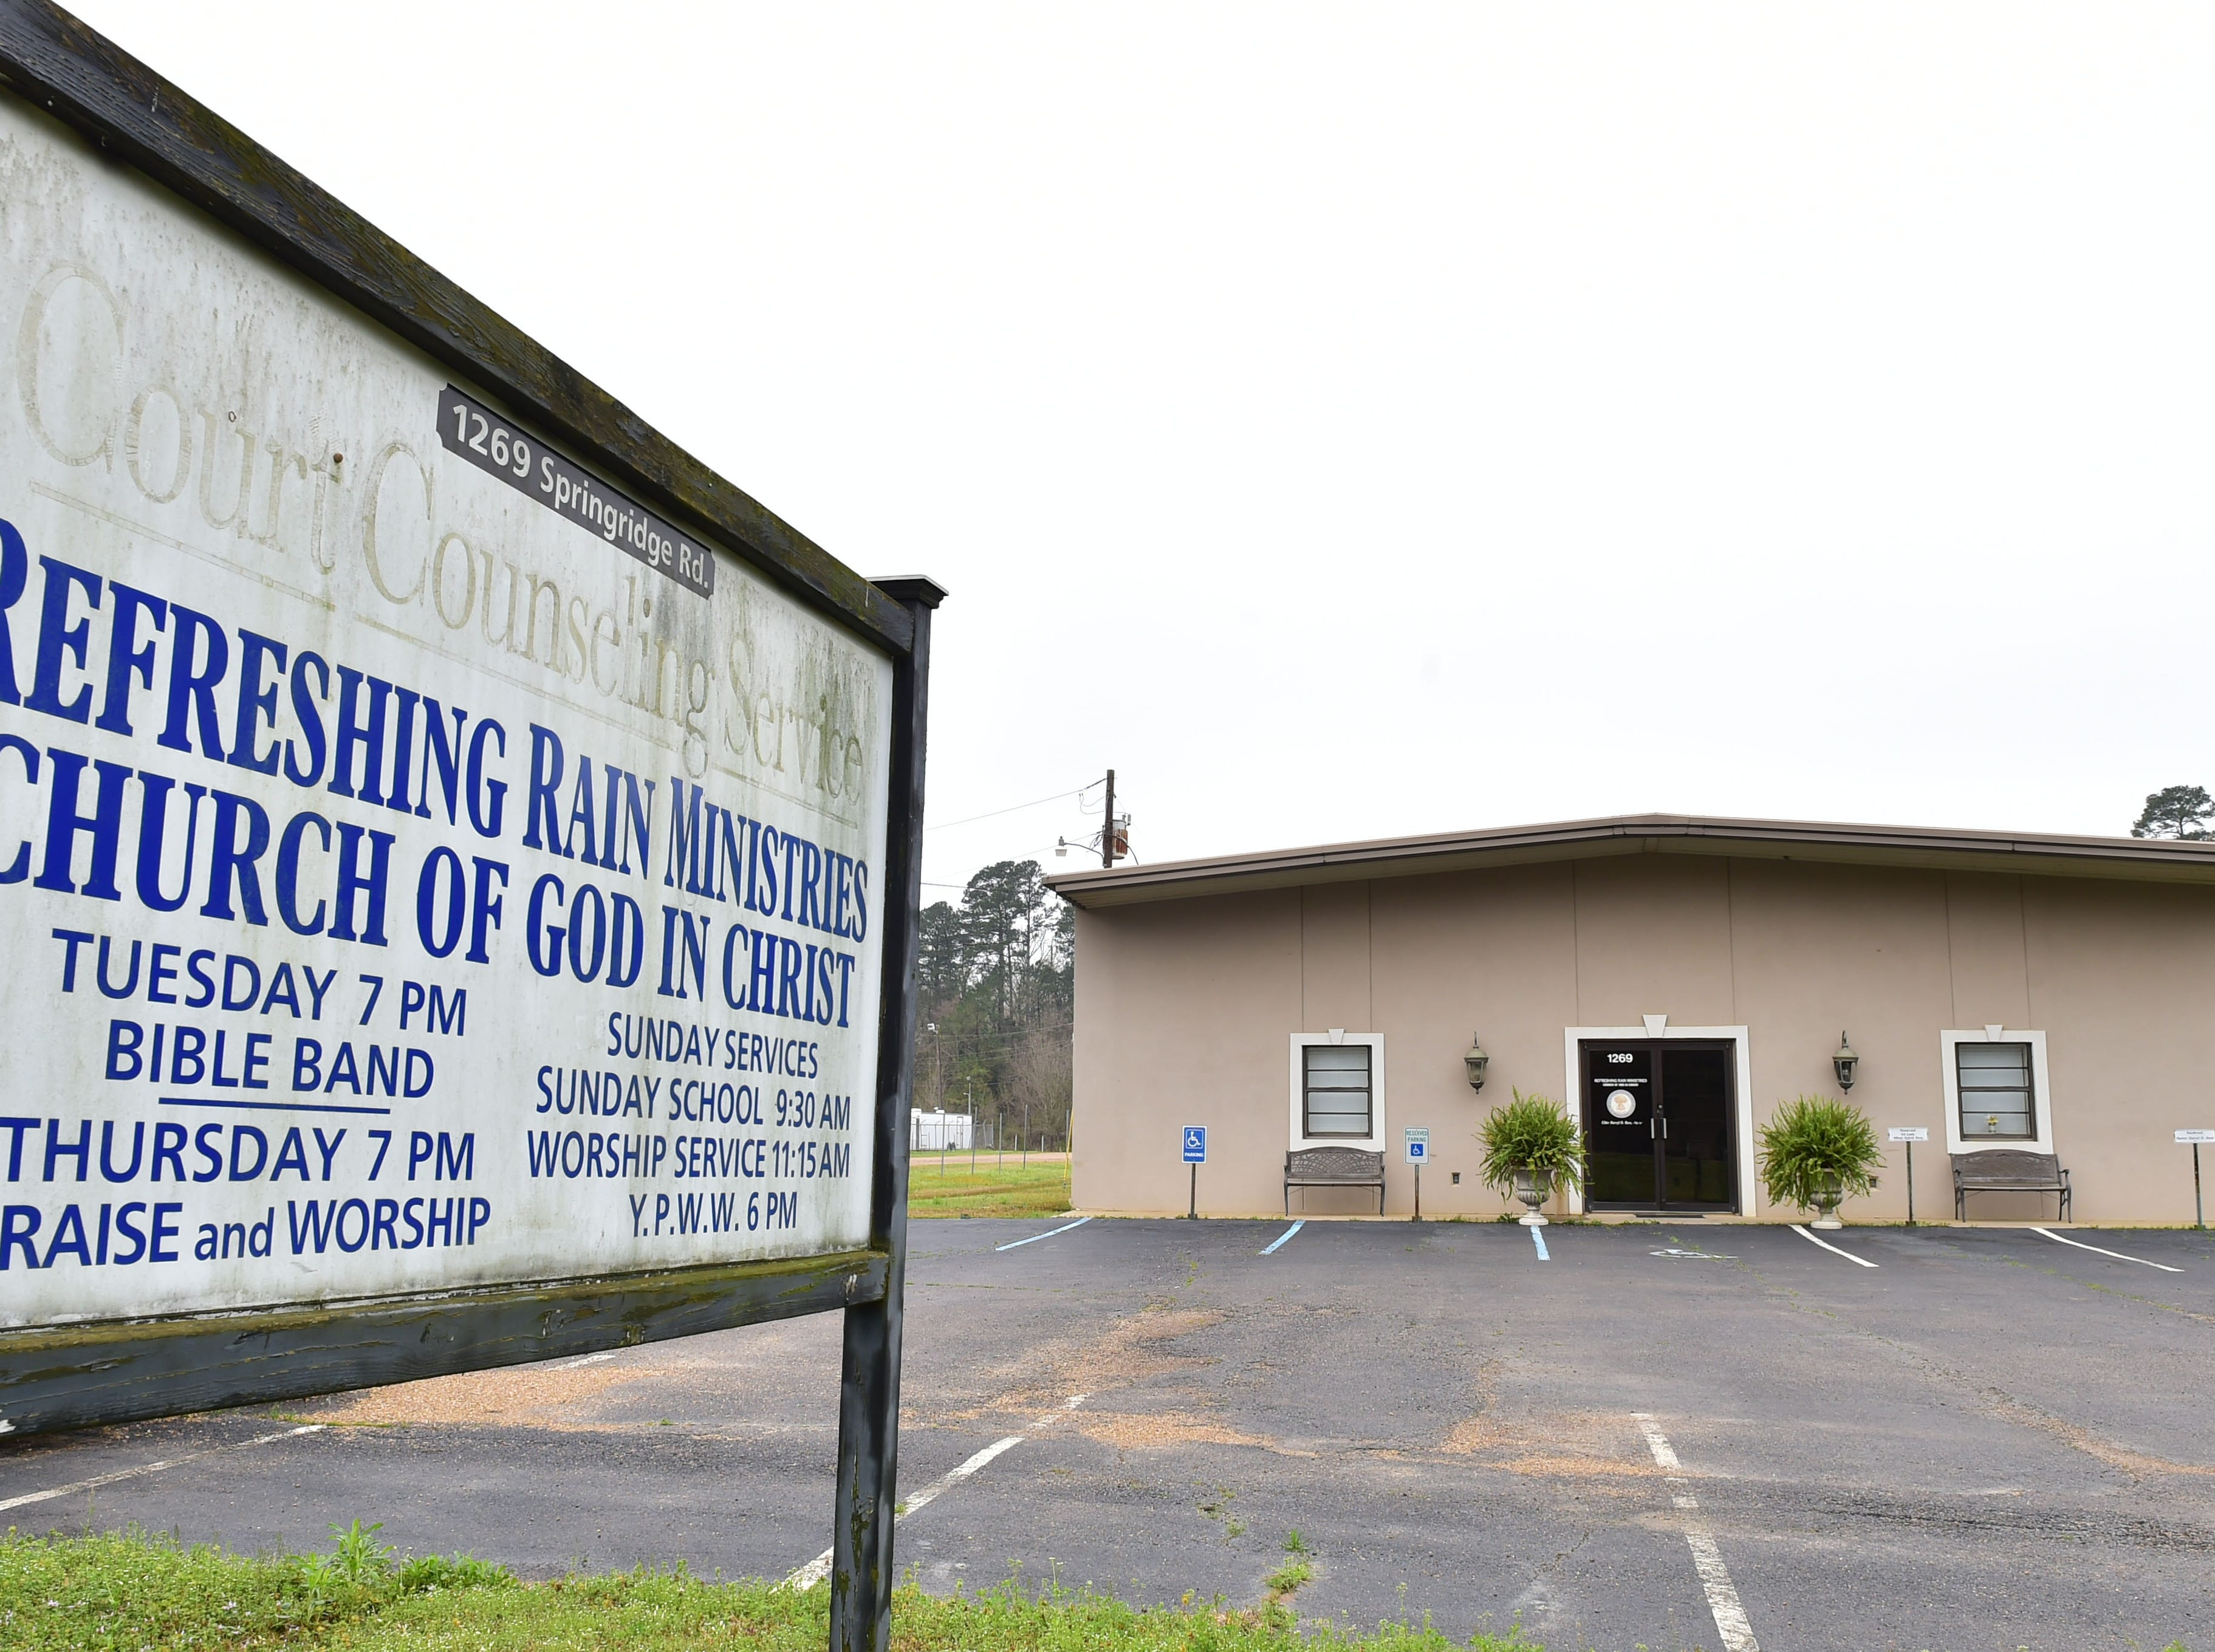 Refreshing Rain Ministries Church of God in Christ in Clinton was the place of worship for 15-year-old Cam'Ron Dowell. Dowell died of injuries sustained in a car accident Feb. 23, 2019.